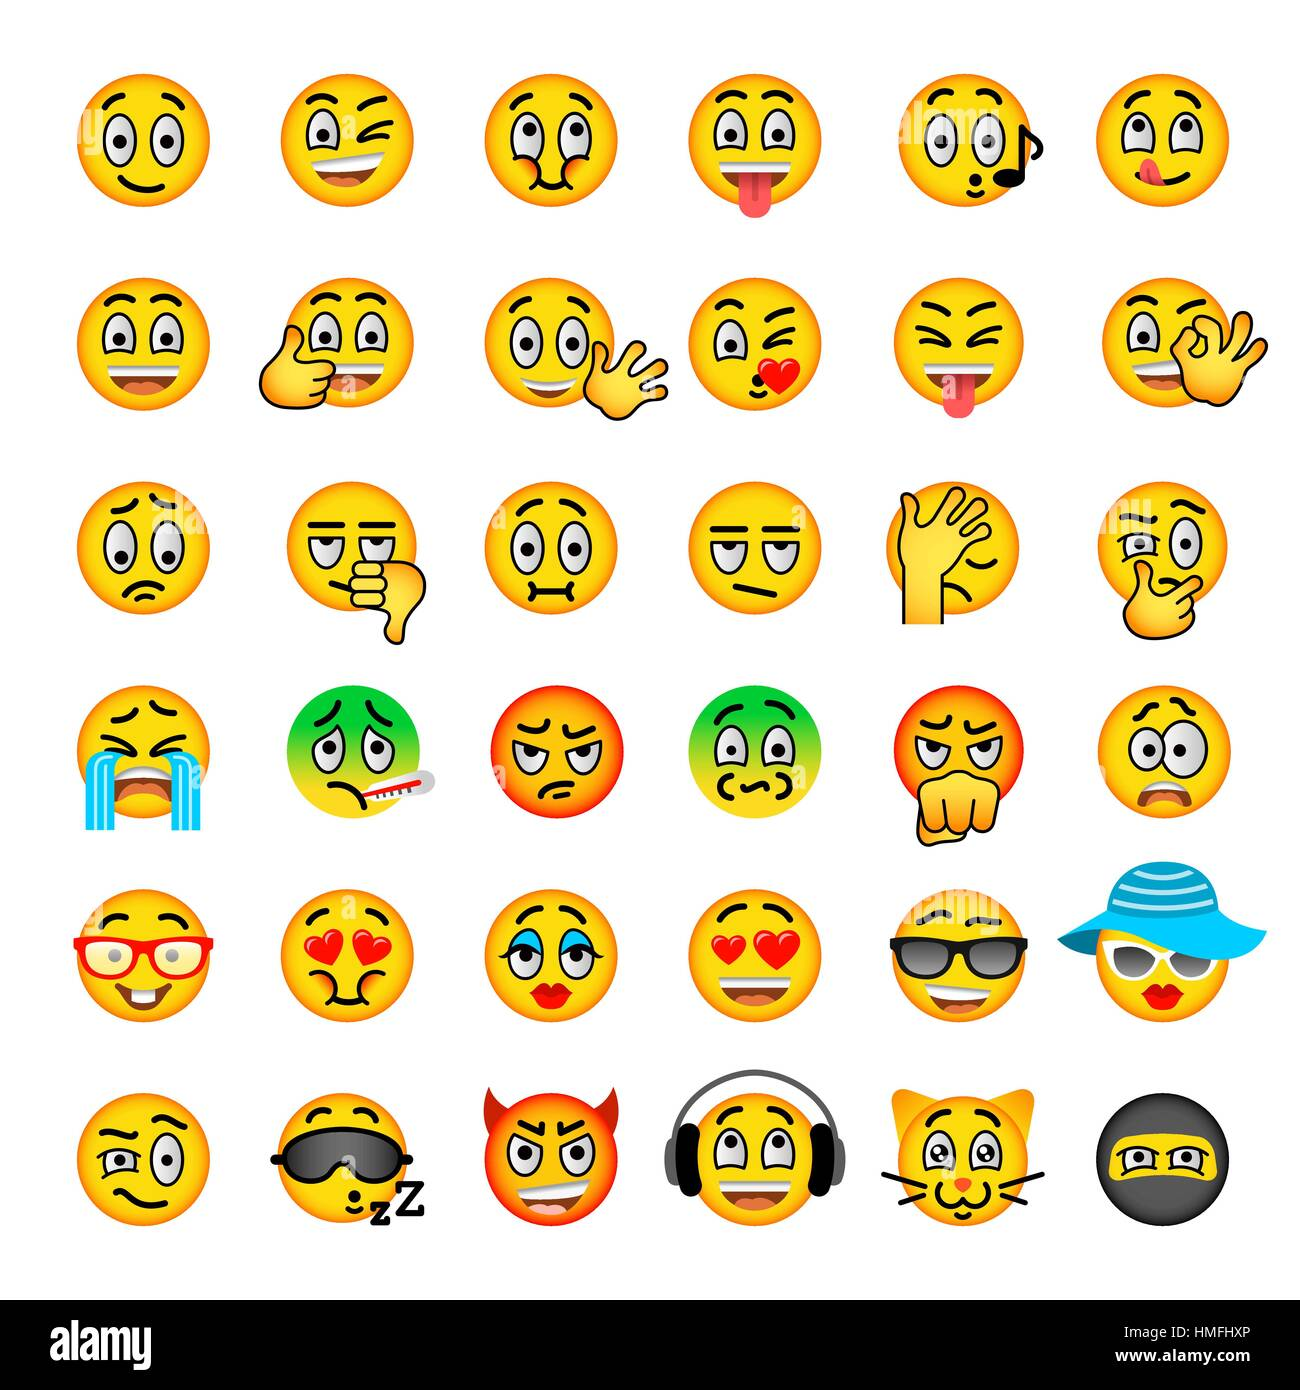 Smiley Face Flat Vector Icons Set Emoji Emoticons Different Facial